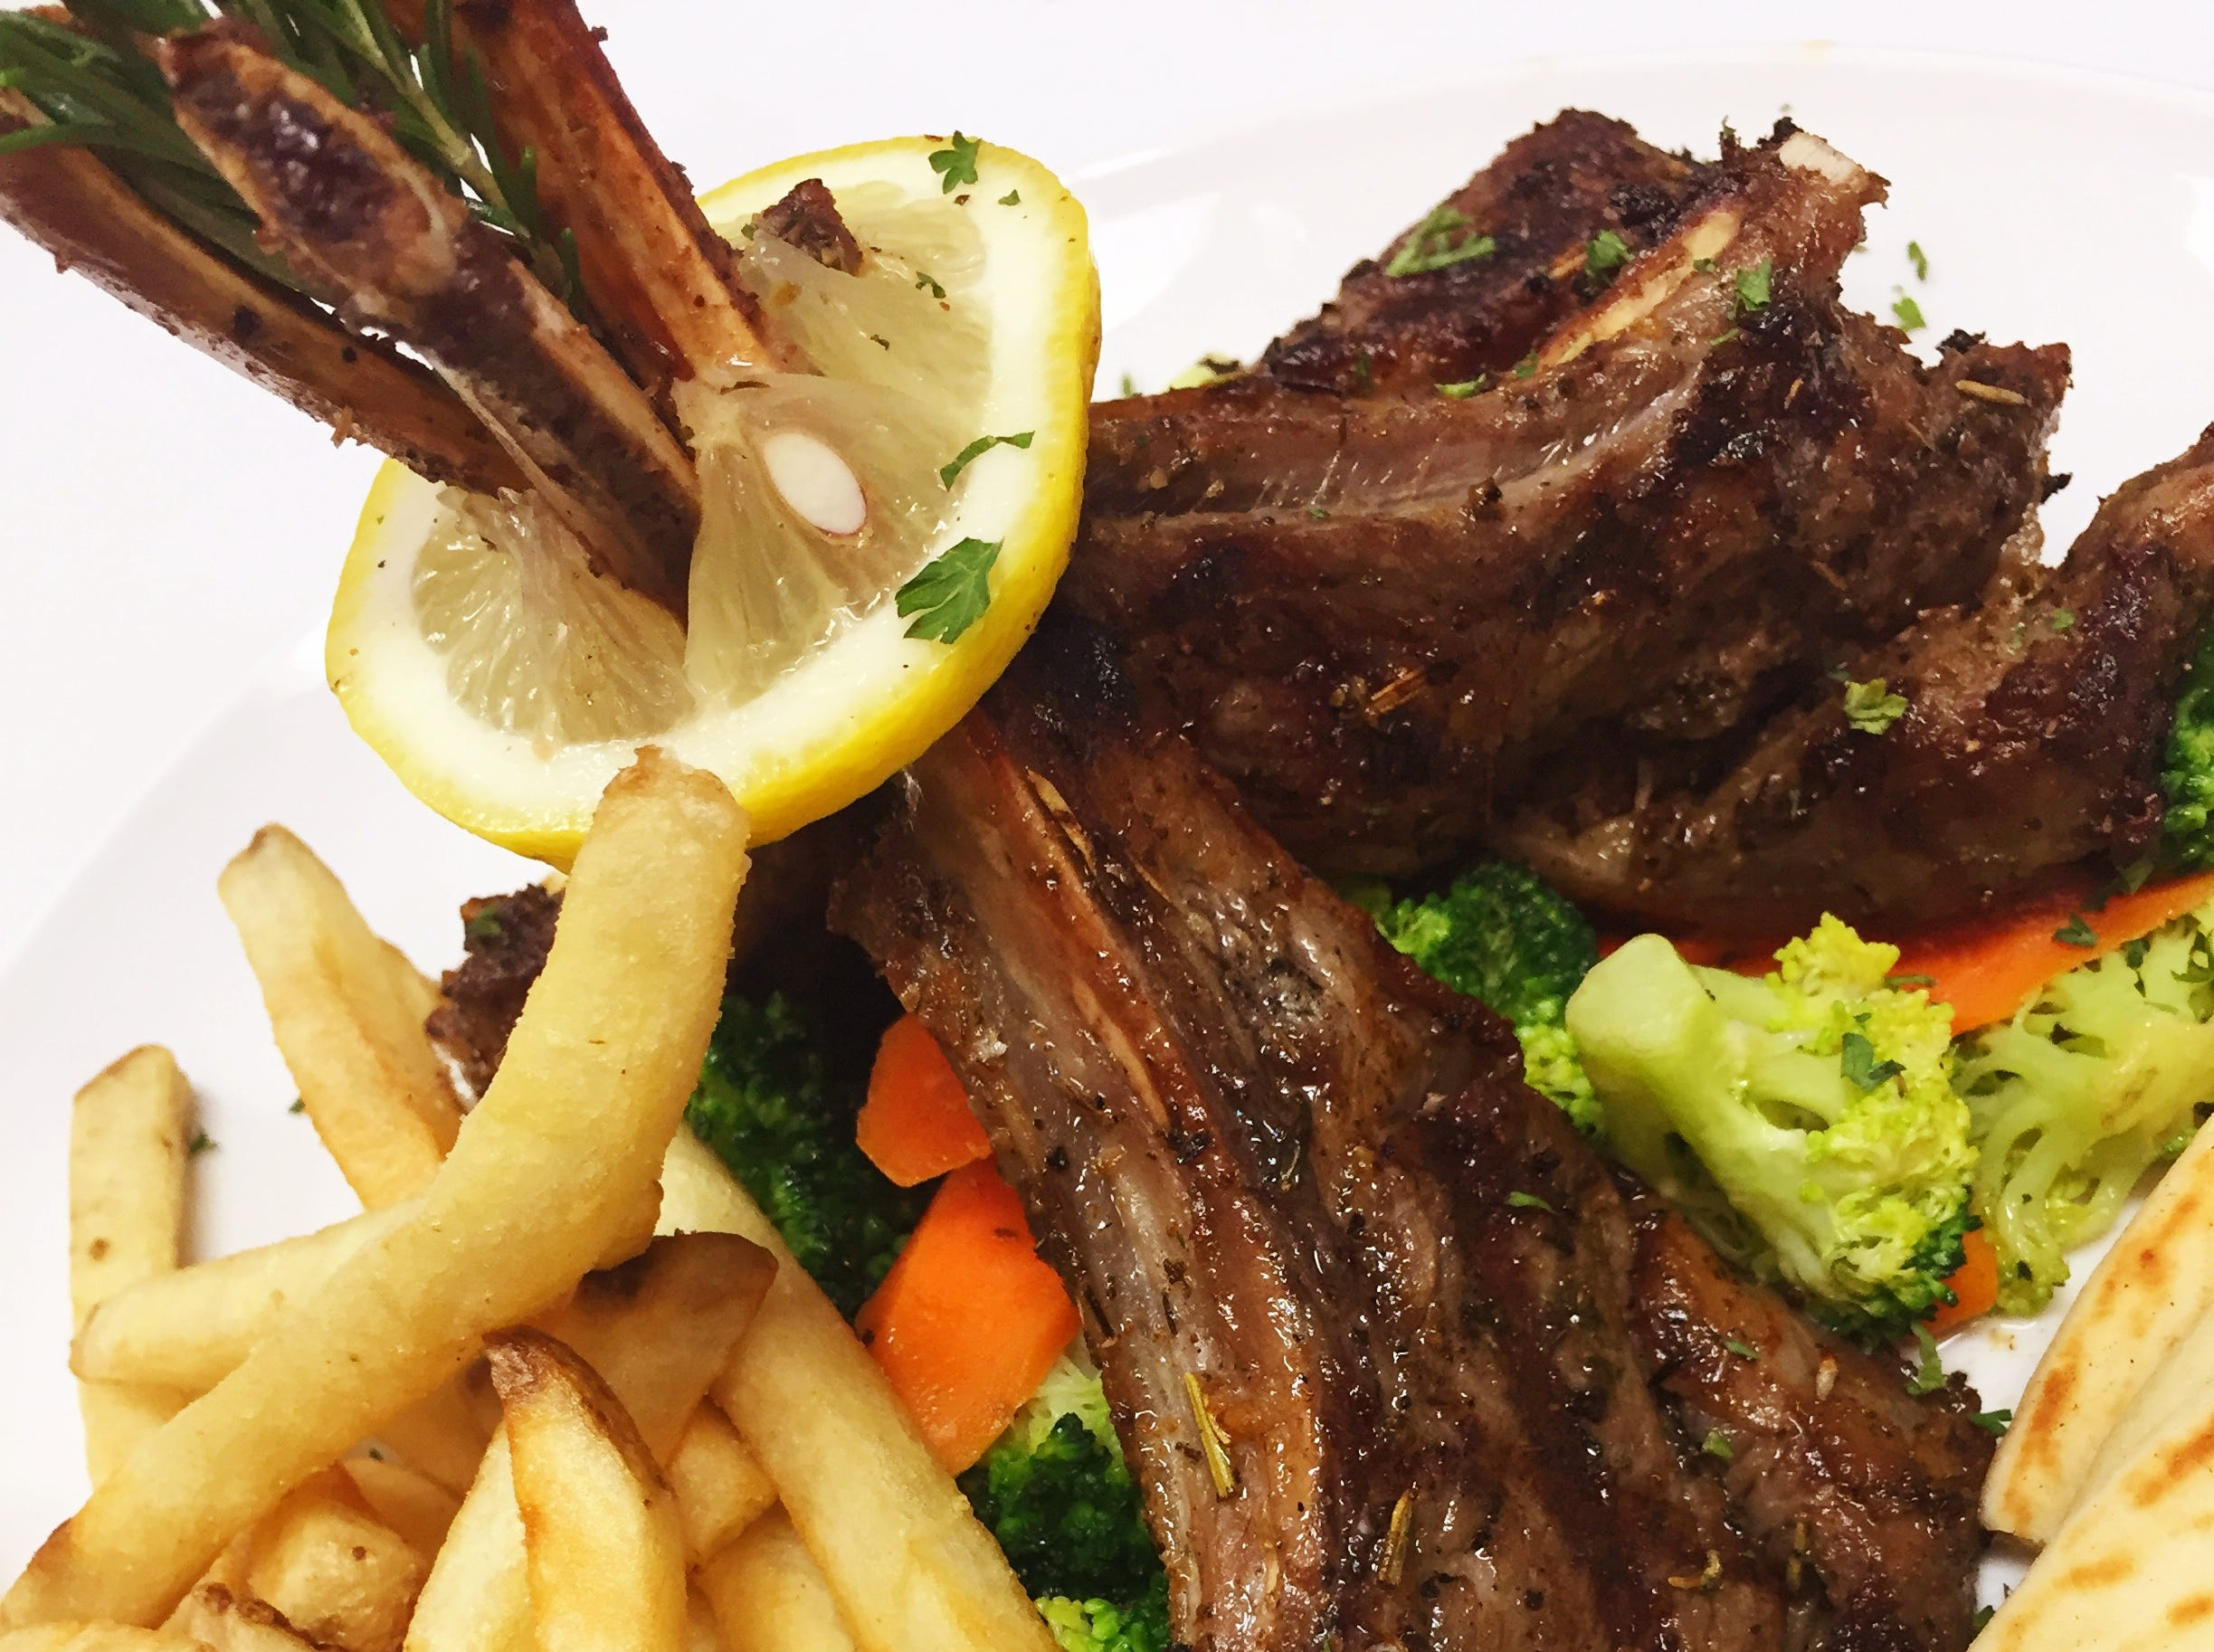 Lamb chops from Kovo, a Mediterranean-inspired restaurant in northeast Phoenix.